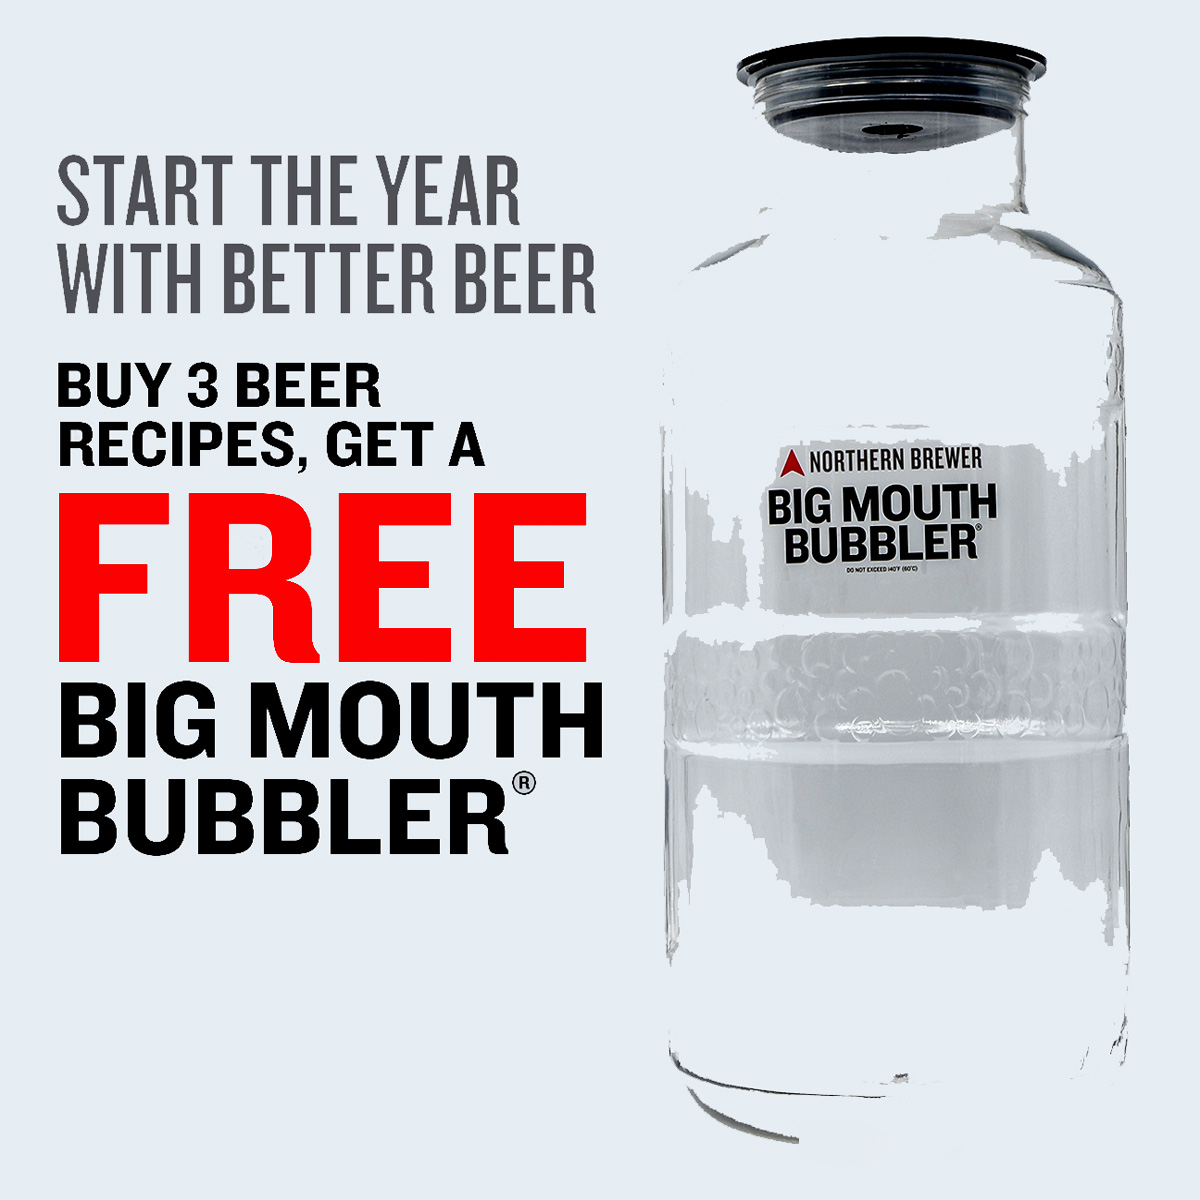 Home Wine Making Coupon Codes for Buy 3 Beer Kits And Get A Free Big Mouth Bubbler Fermenter Northern Brewer Promo Code Coupon Code